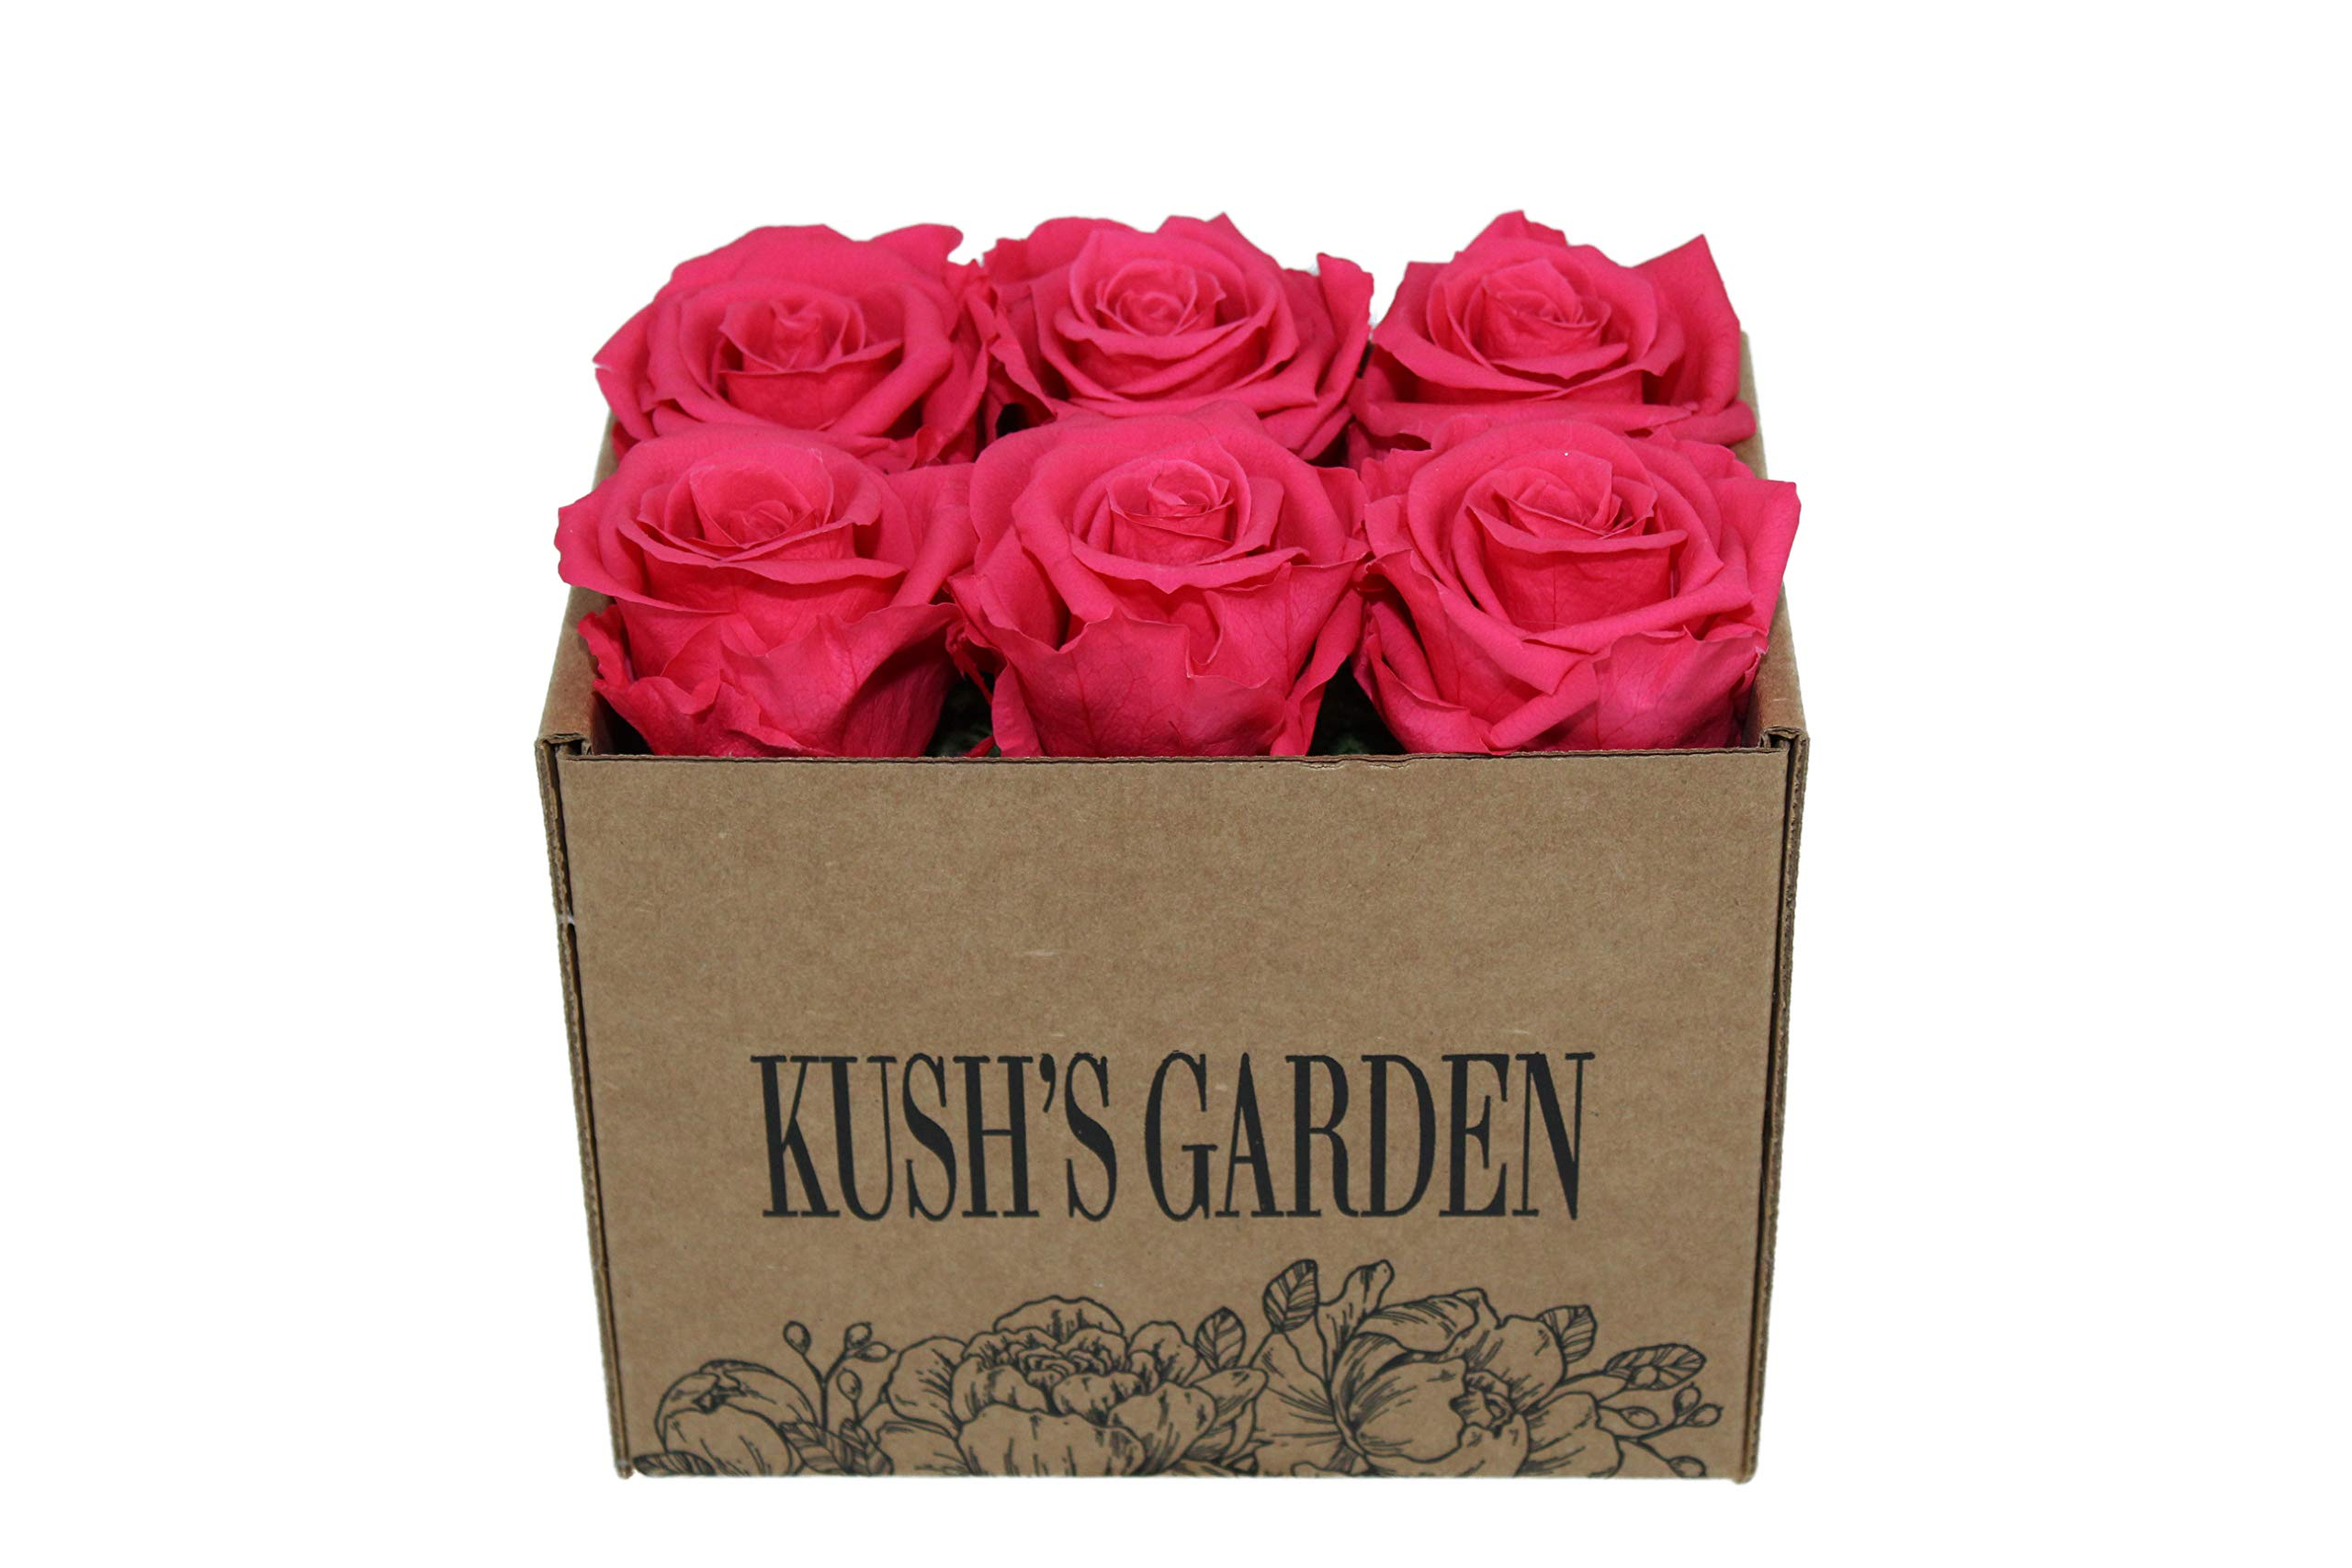 KUSHS GARDEN Real Preserved Roses in Box (Spicy Hot Pink)